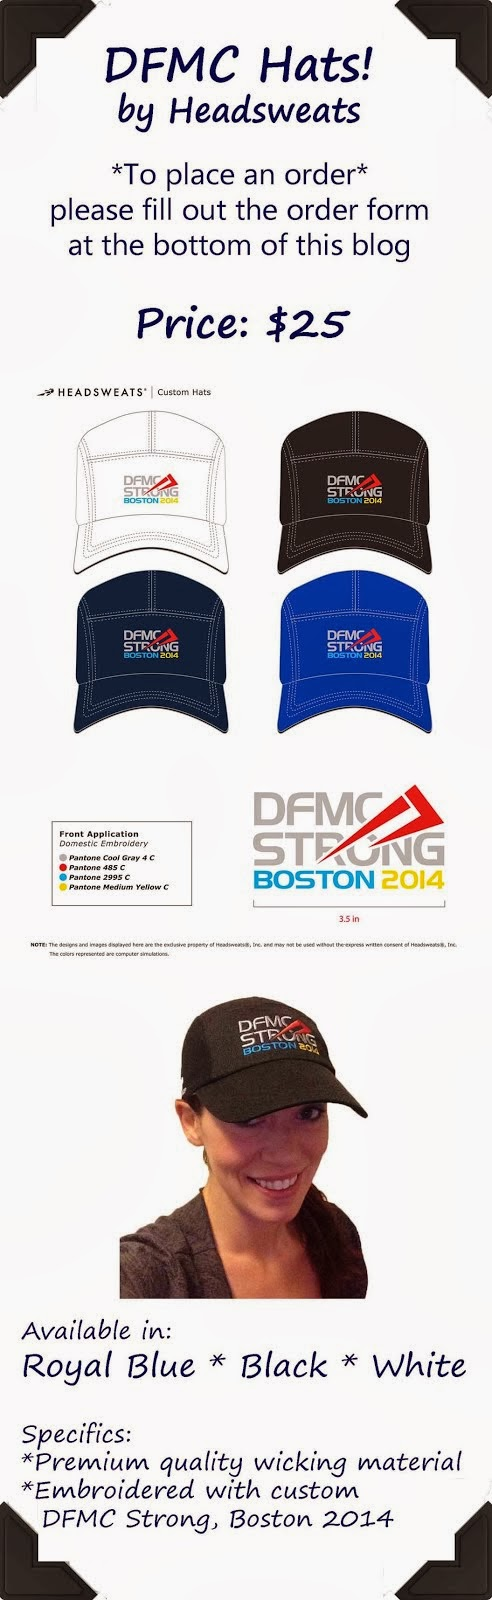 Get Your DFMC Hats Now!